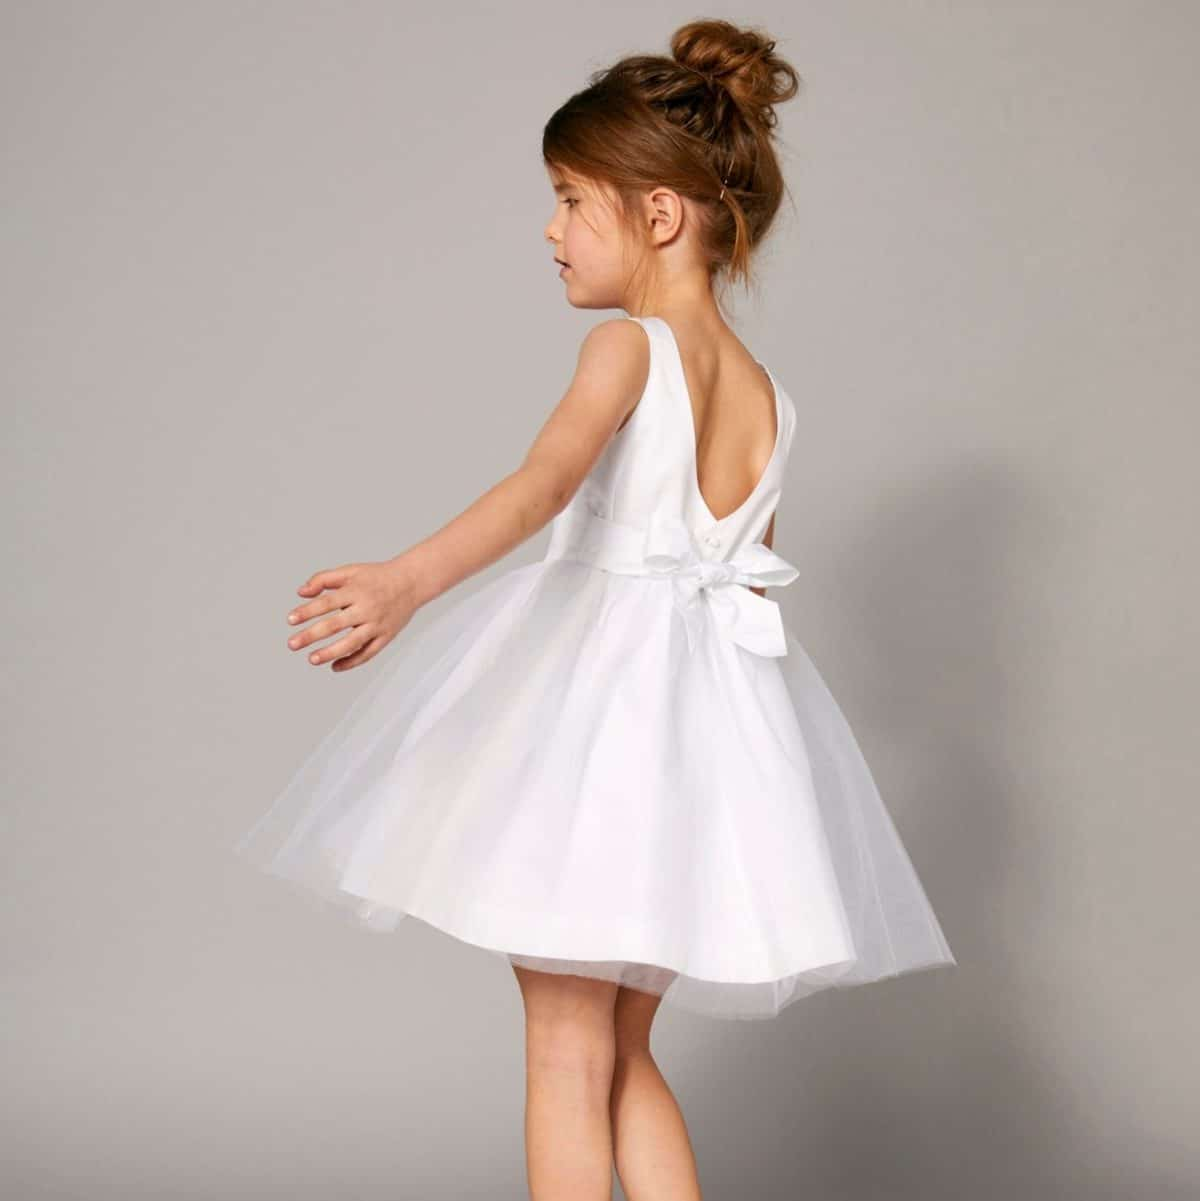 9f2556729d2ae tenue-ceremonie-pour-enfant-robe-de-ceremonie-fille-